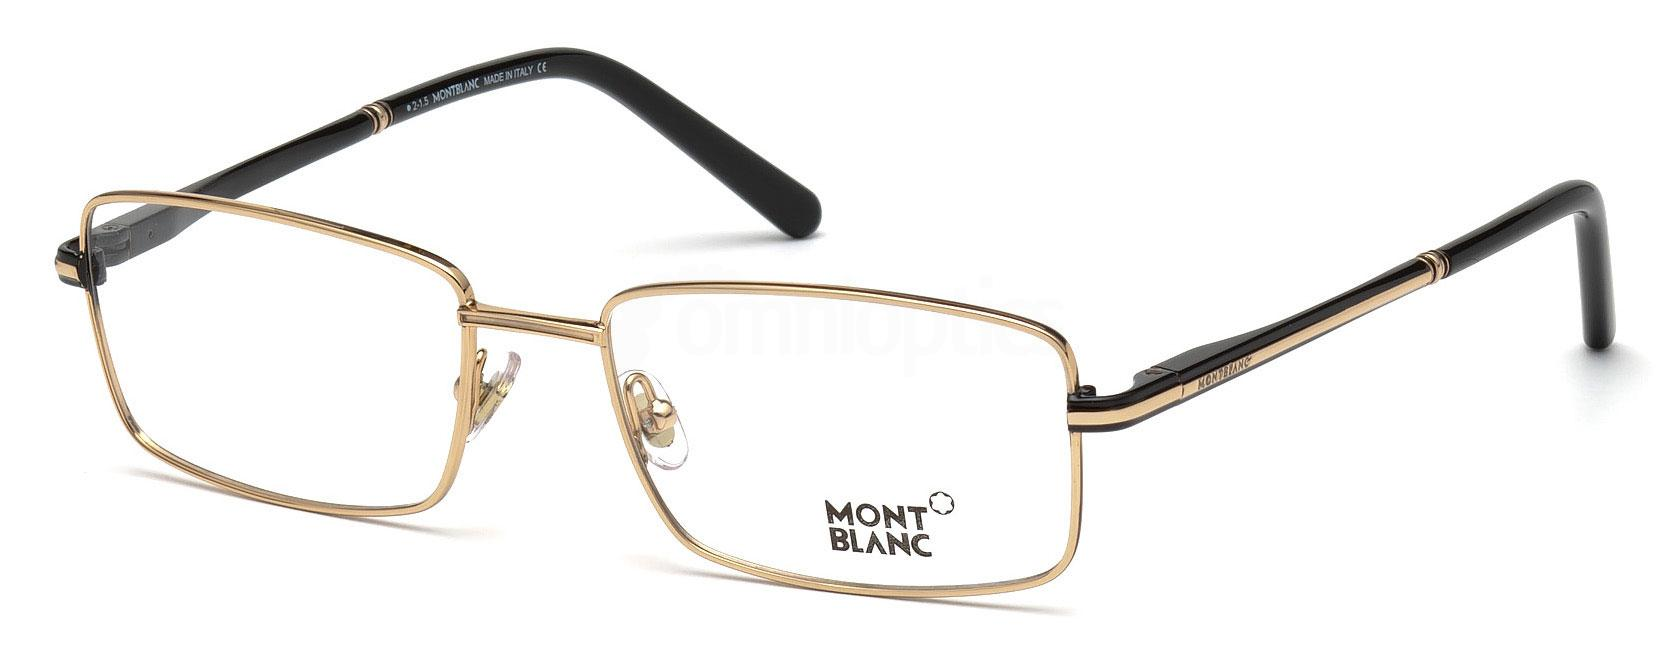 001 MB0578 Glasses, Mont Blanc